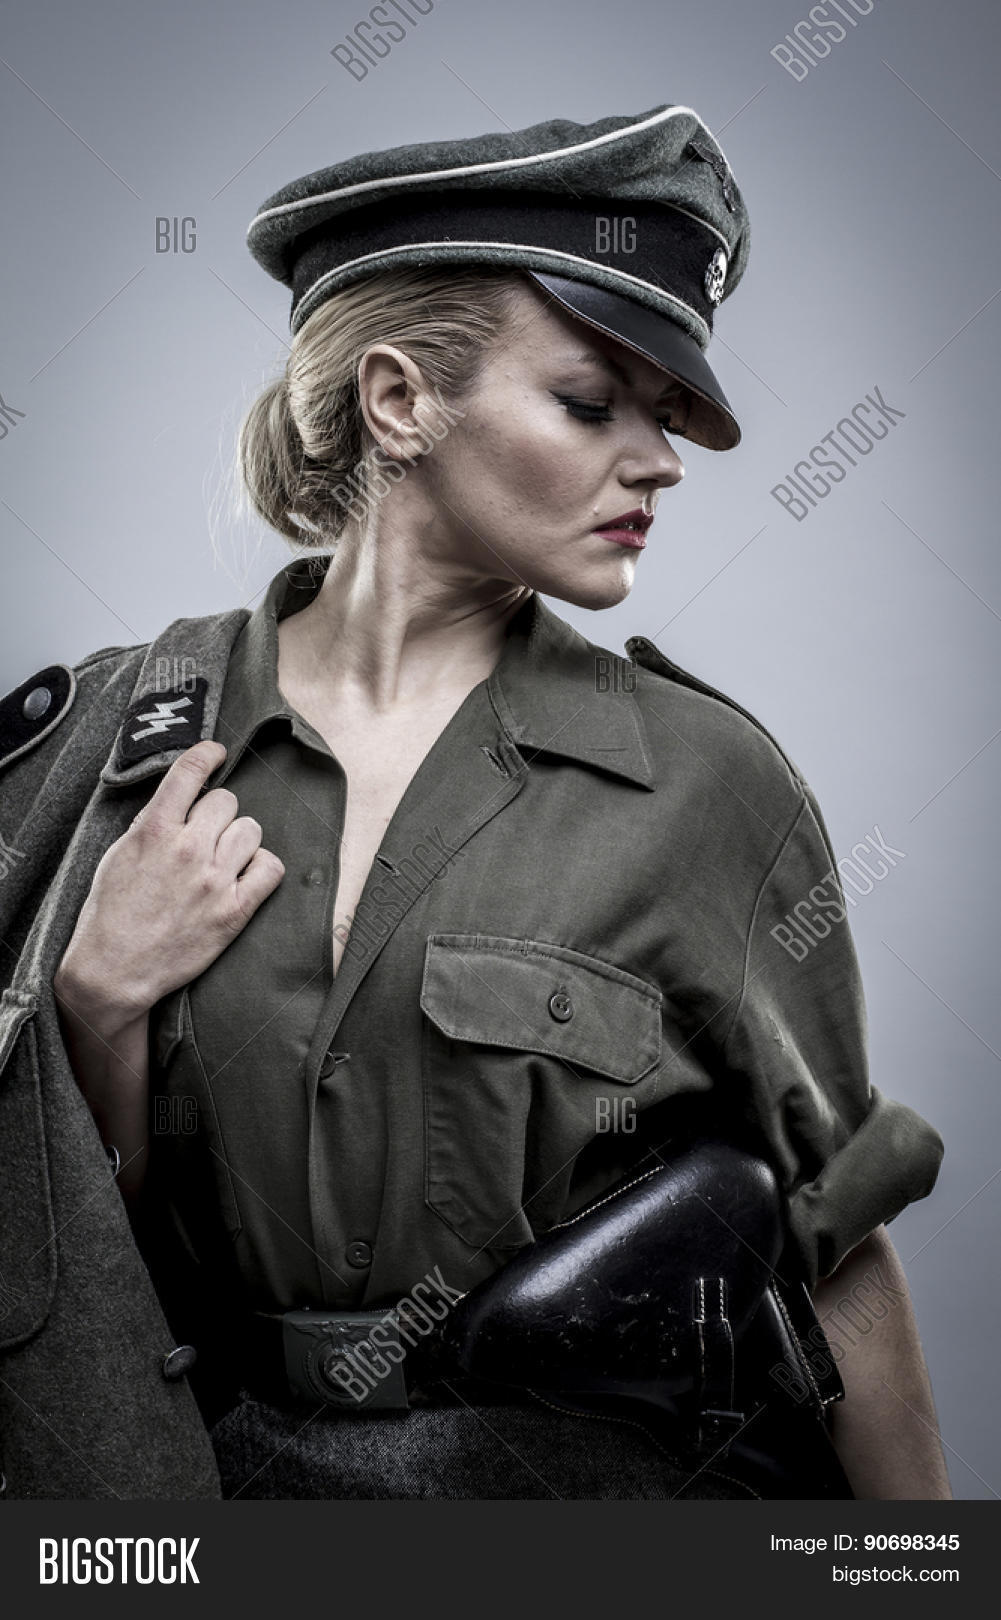 image Blond female officer make a mistake